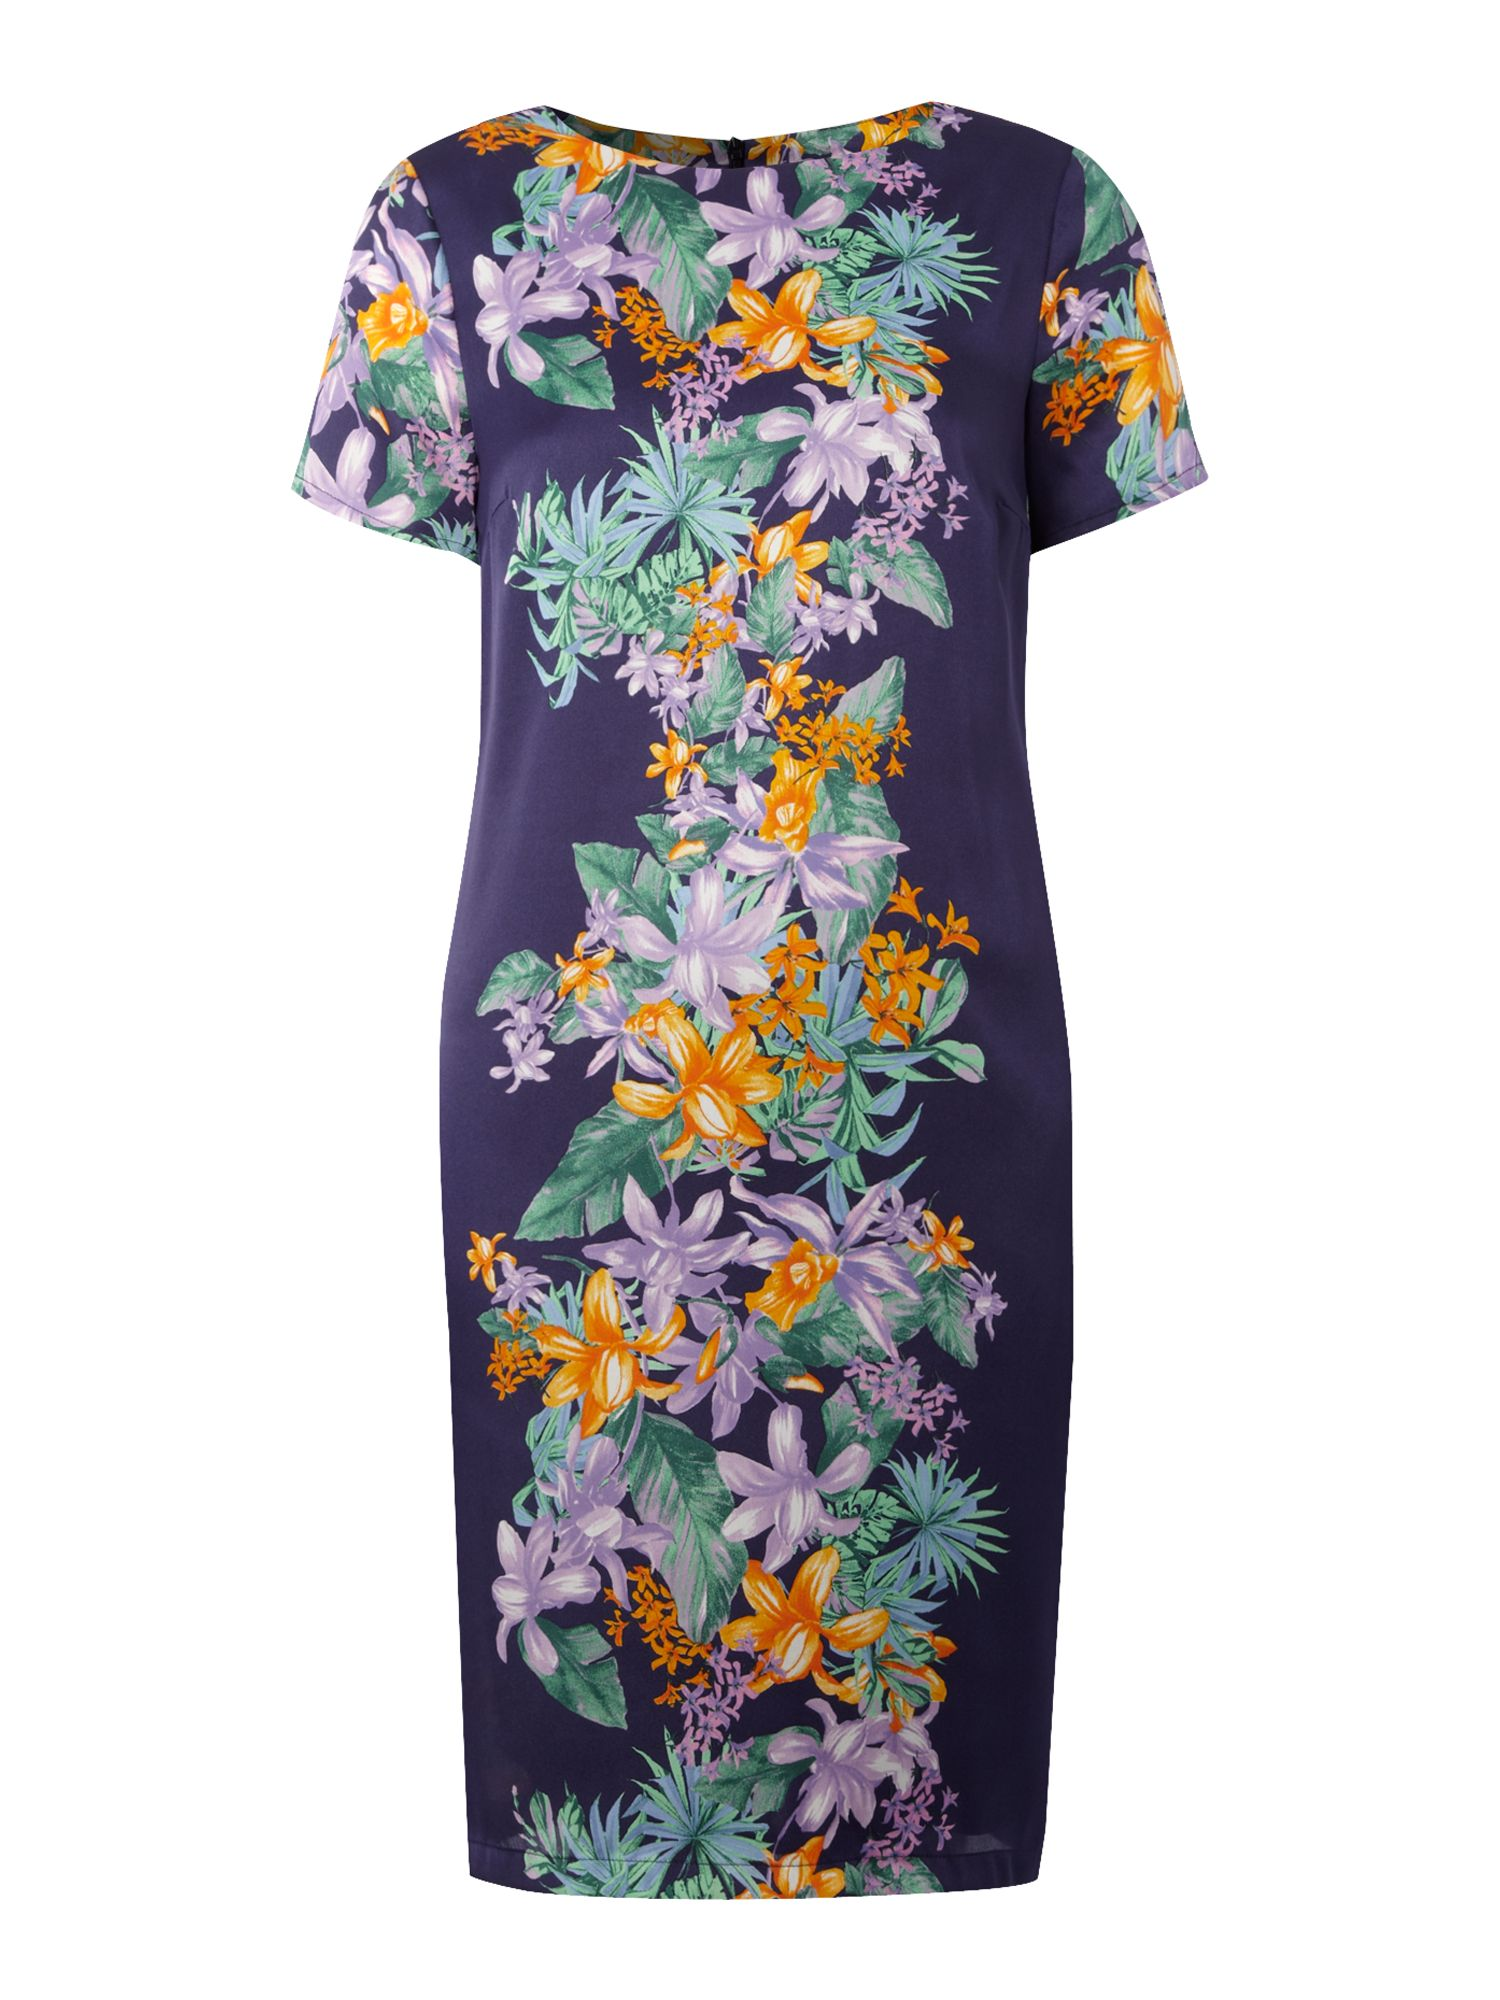 Short sleeve tropical print dress